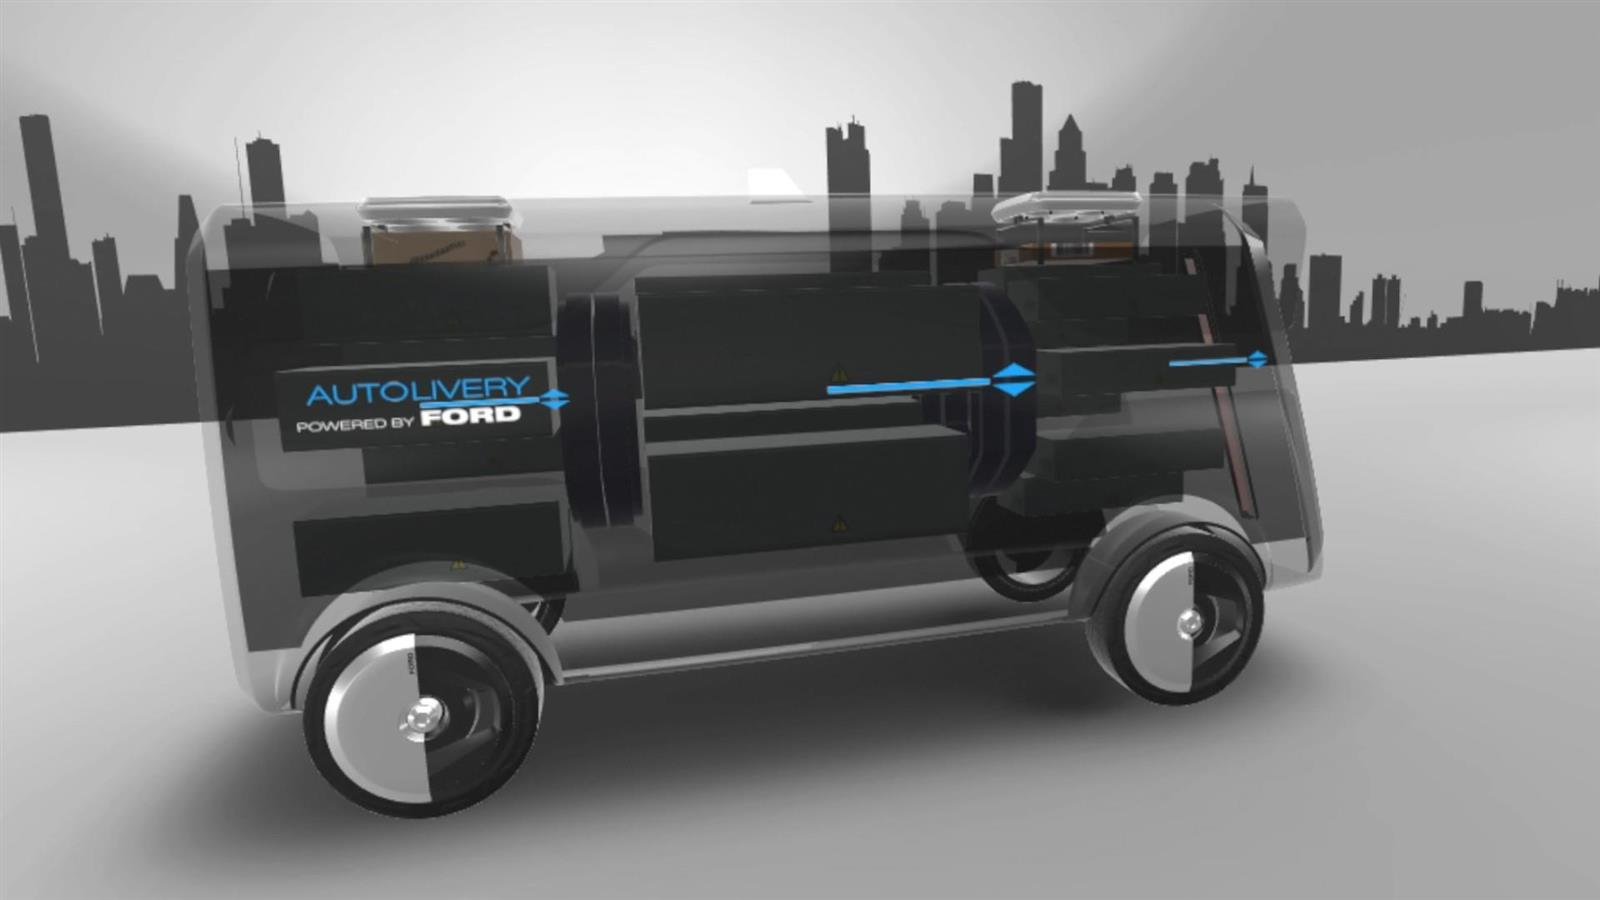 2017 Ford Autolivery Concept